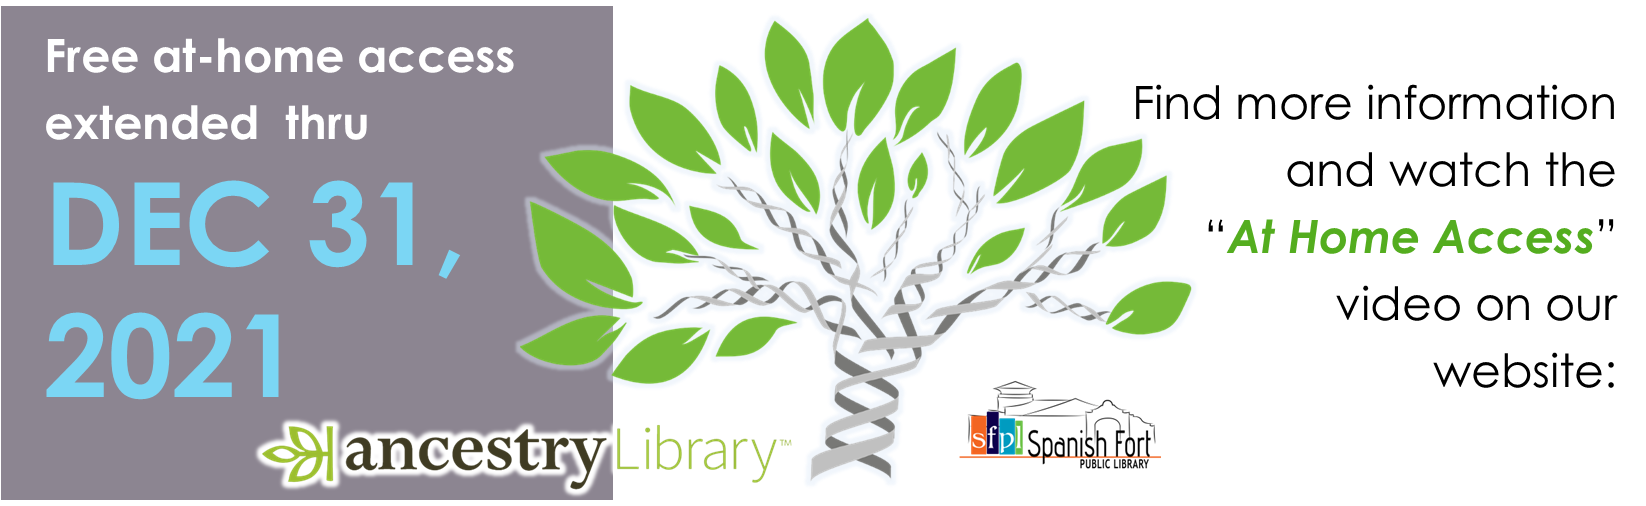 Ancestry Library Edition at home access will be provided to Alabama residents thru December 31, 2021 thanks to the generosity of ProQuest and the Alabama Public Library Service.